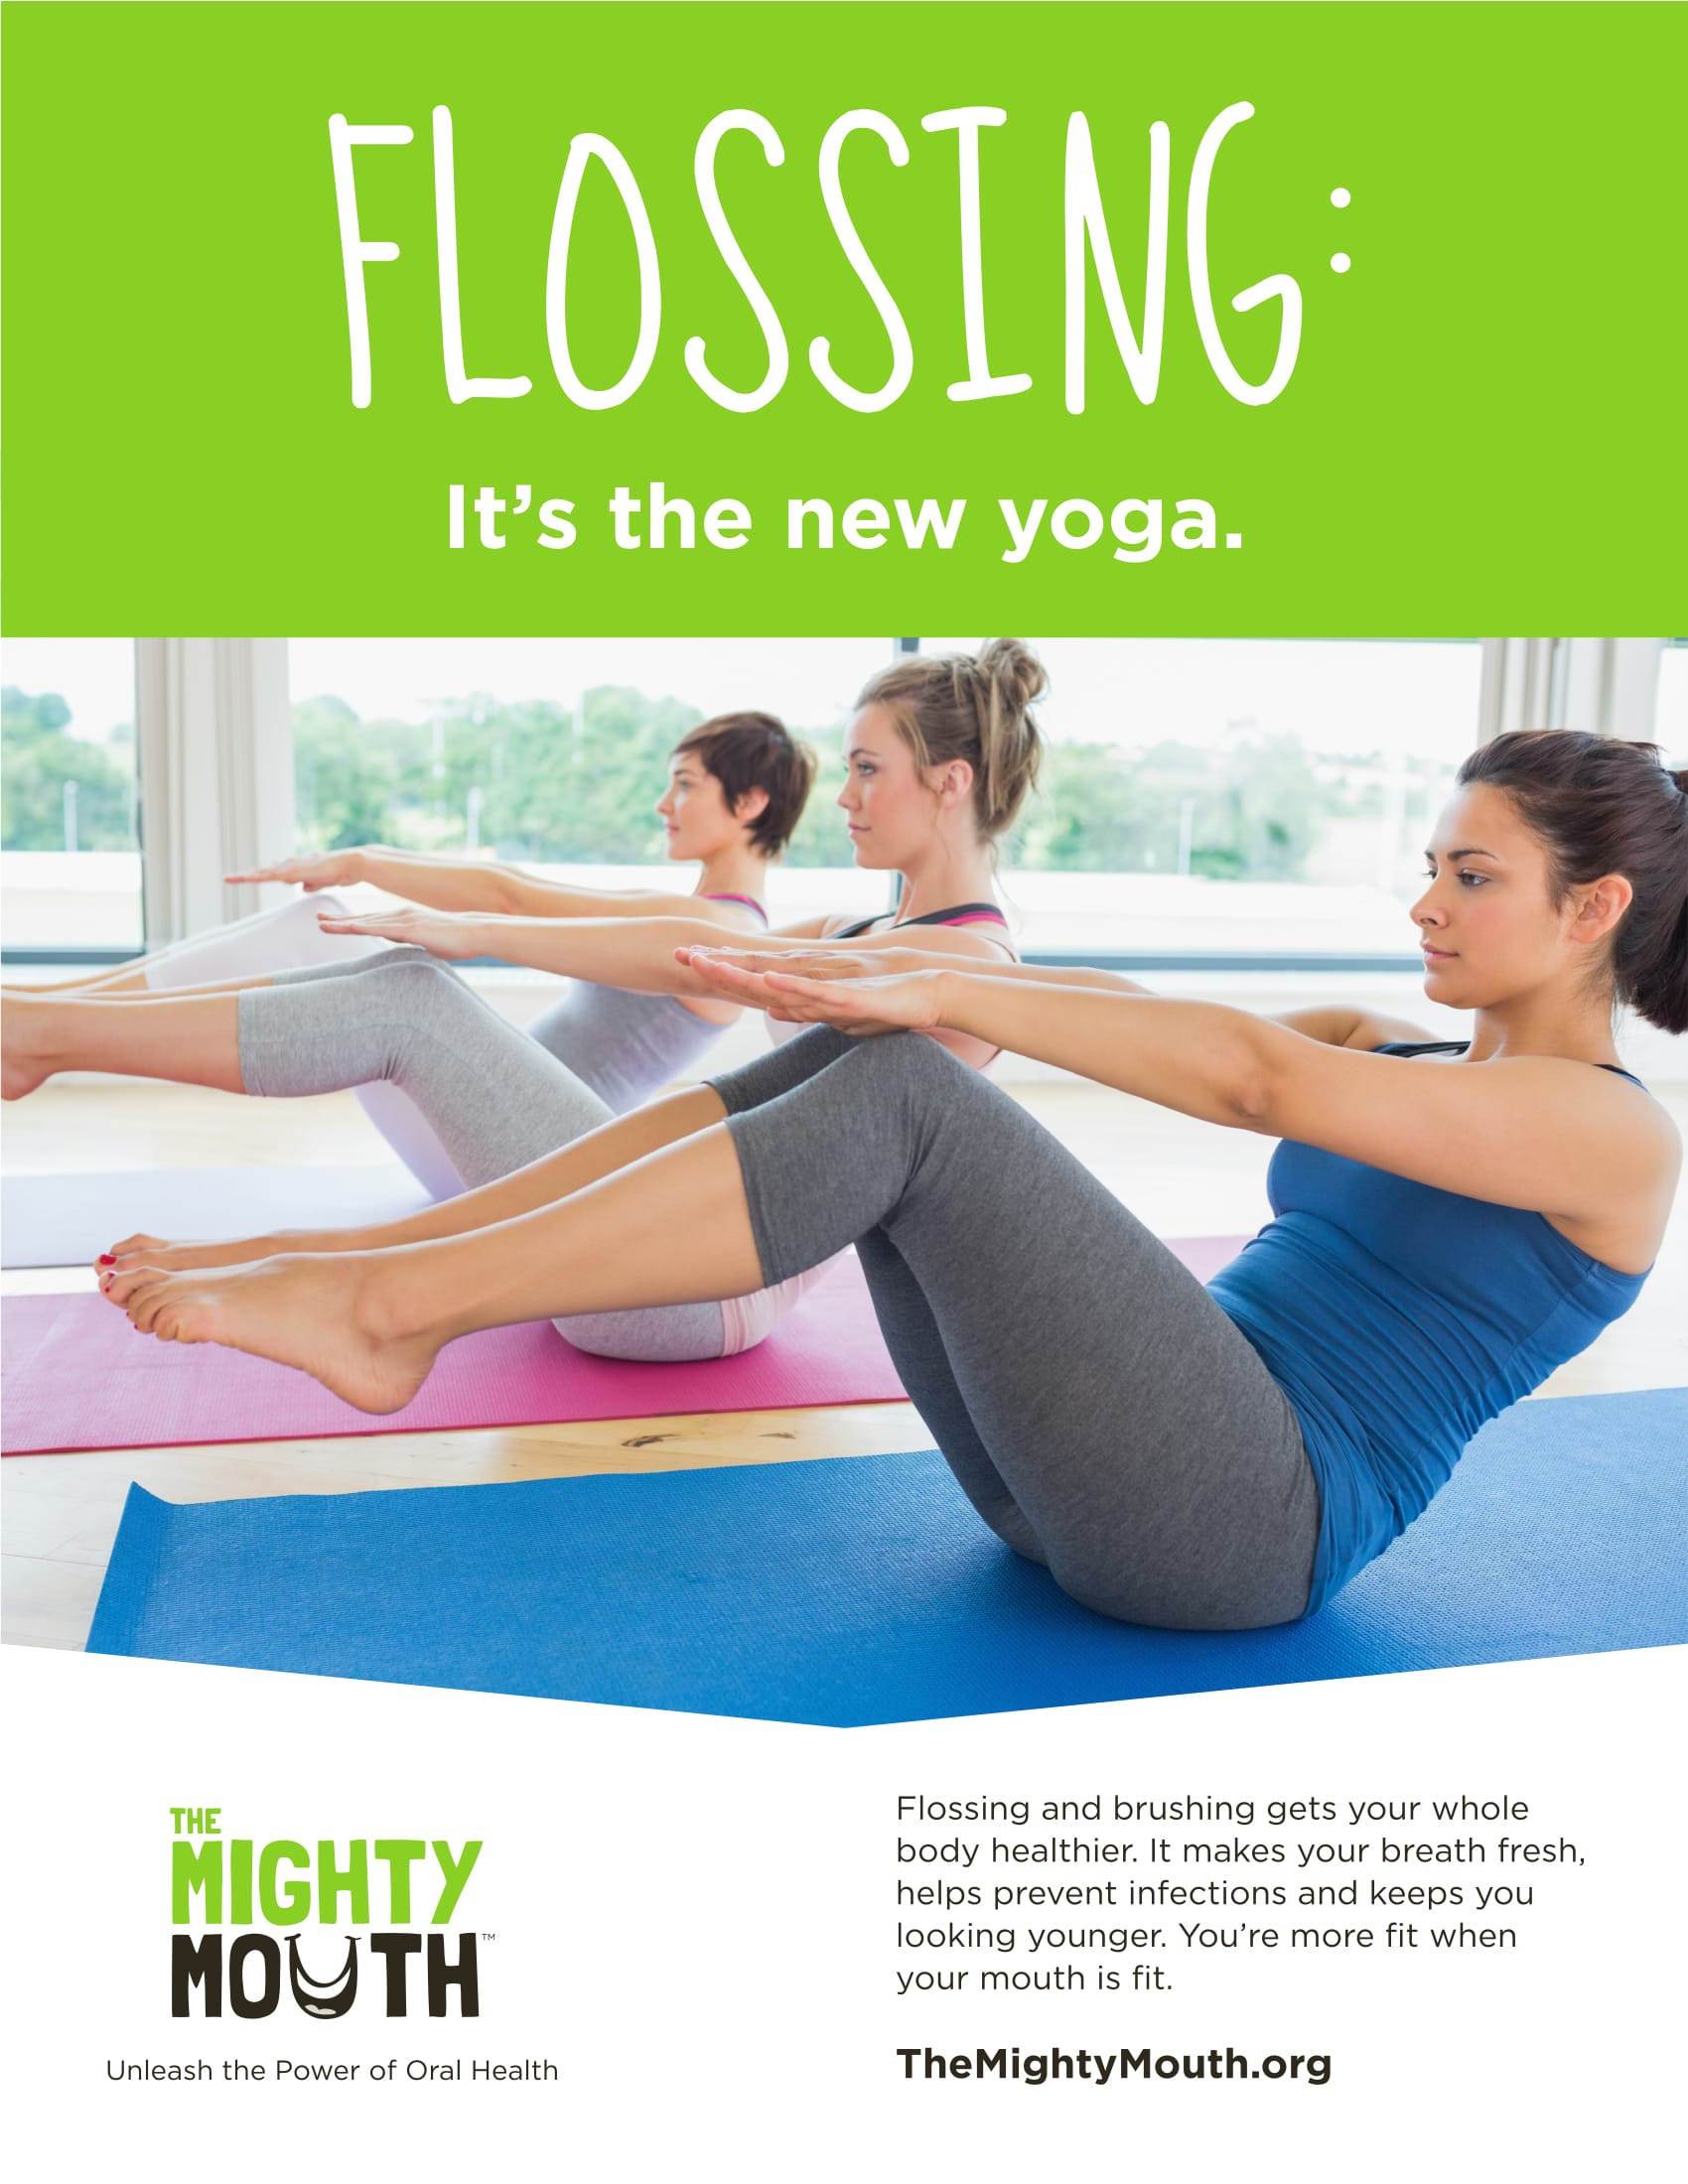 Flossing: It's the new yoga.